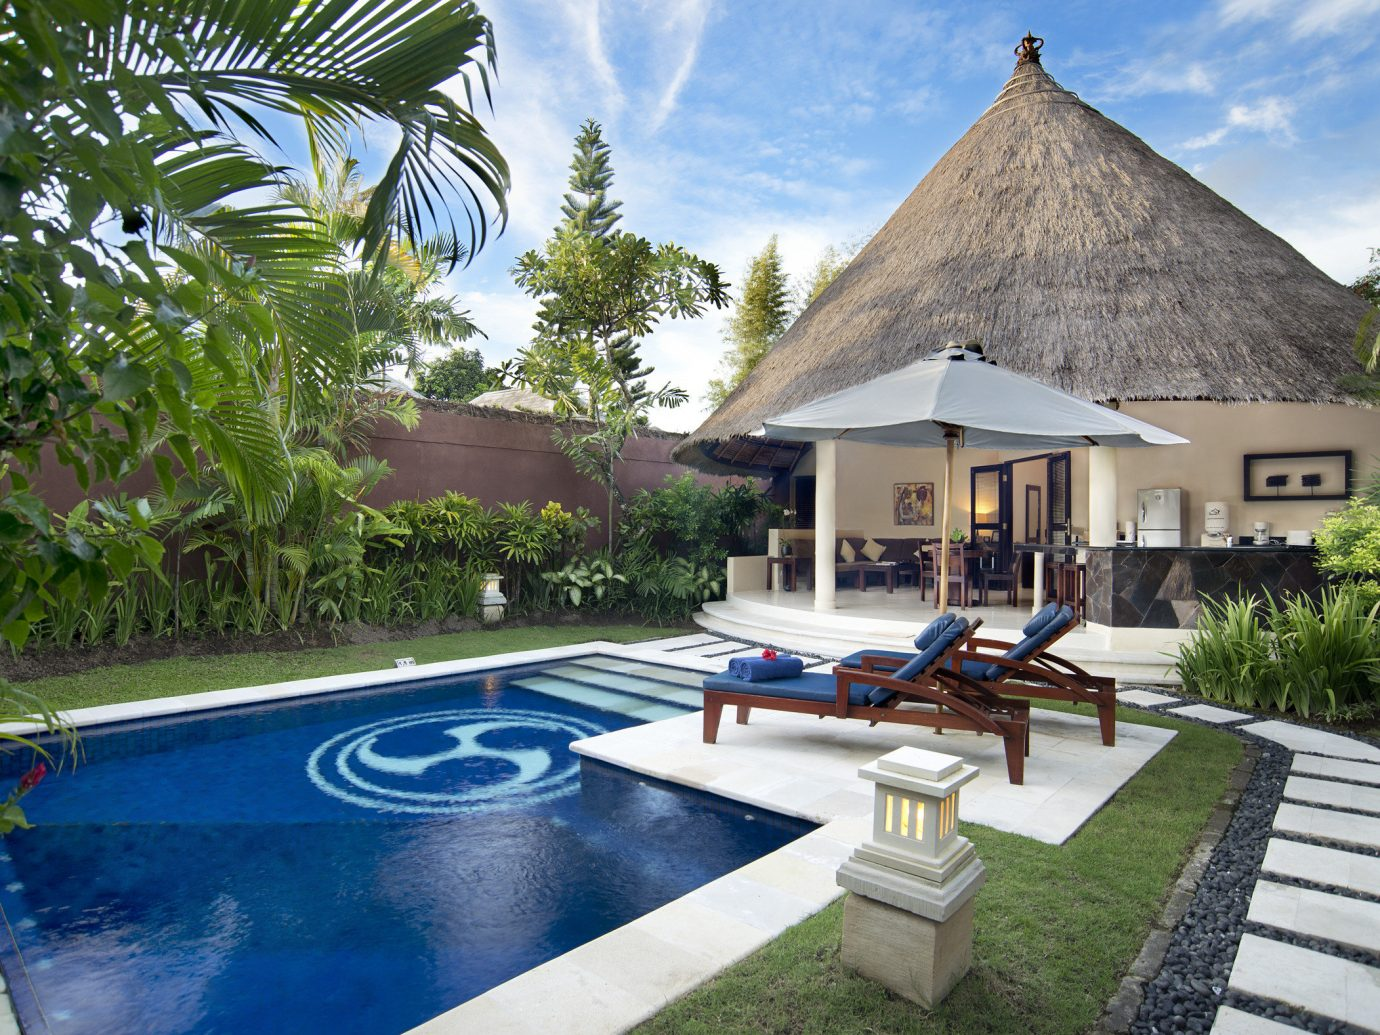 Jetsetter Guides tree outdoor swimming pool property estate Resort Villa building vacation backyard home cottage real estate mansion Pool hacienda eco hotel house area stone